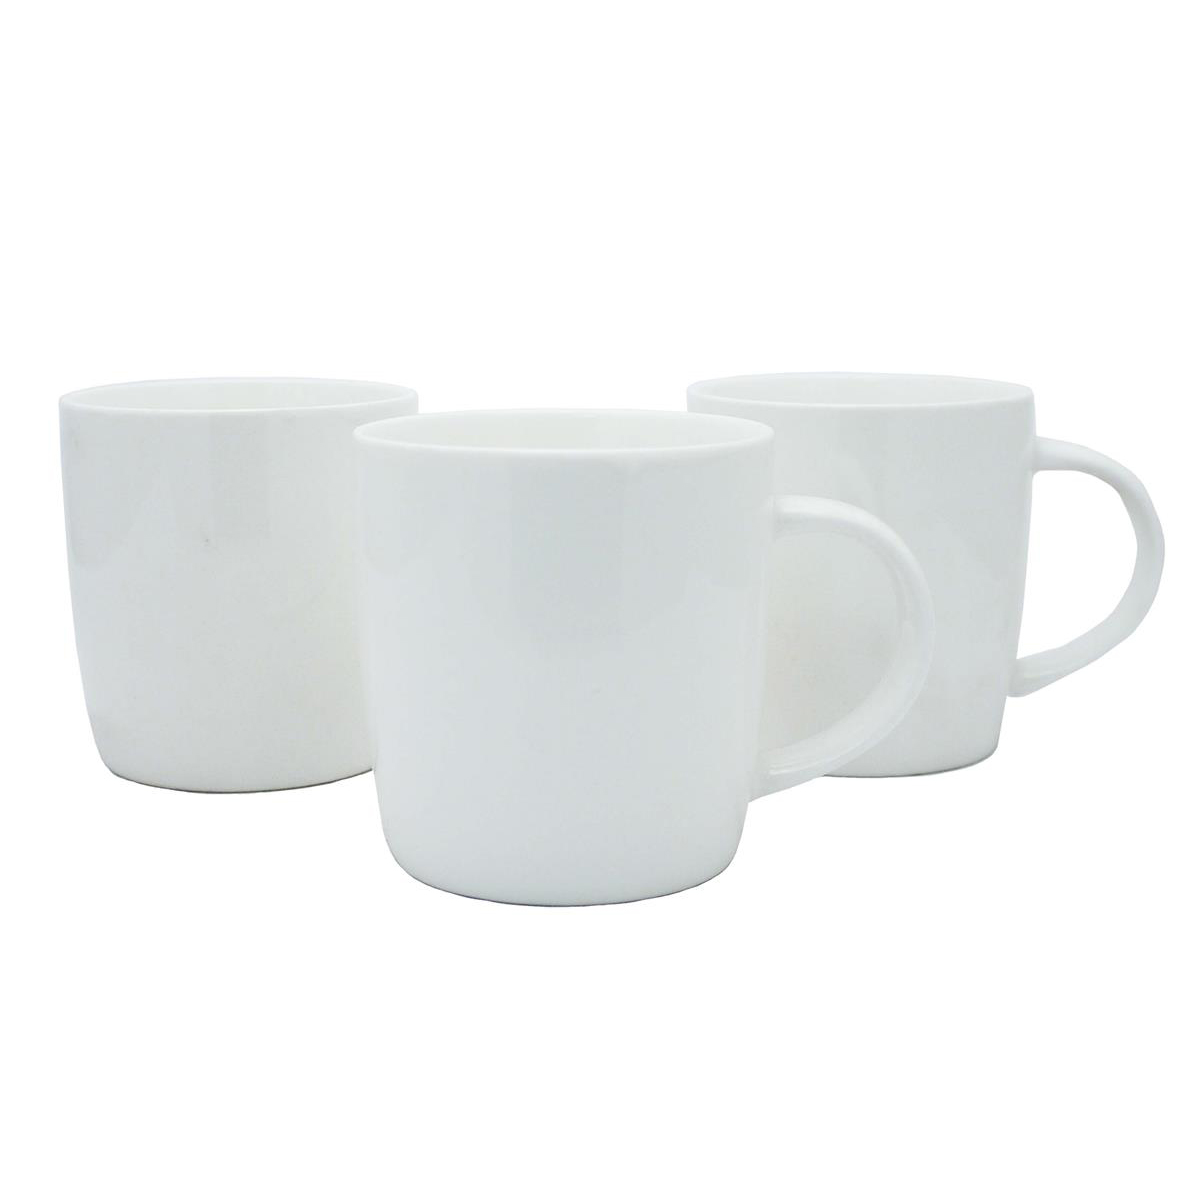 Earthenware Bullet Mugs 12oz White Ref 0399391 [Pack 12]